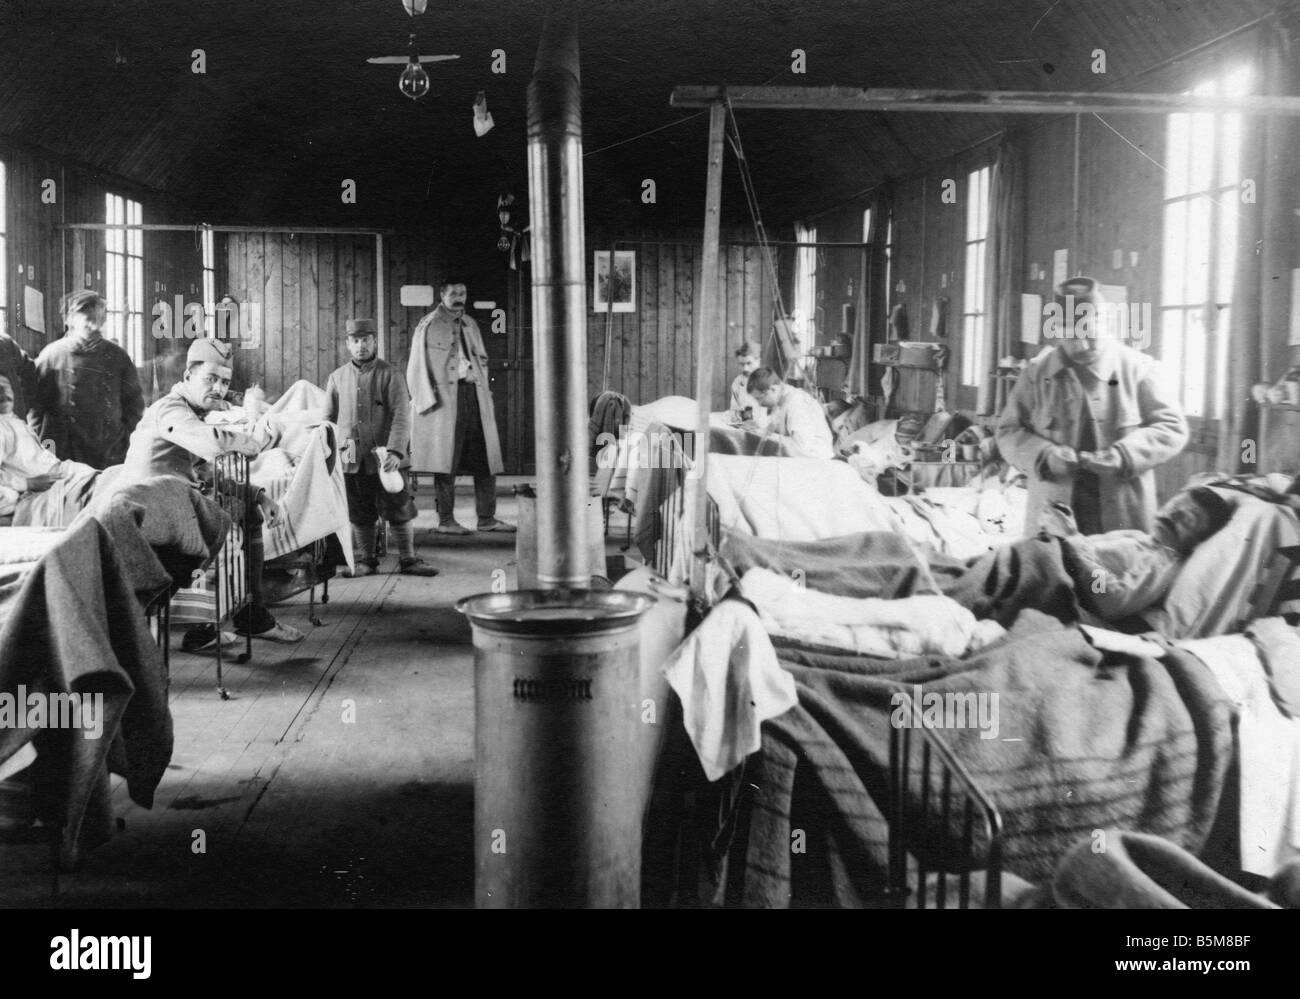 2 G55 F1 1915 8 Fatally Wounded in French Field Hospital History WWI France Fatally Wounded in a Field Hospital Stock Photo